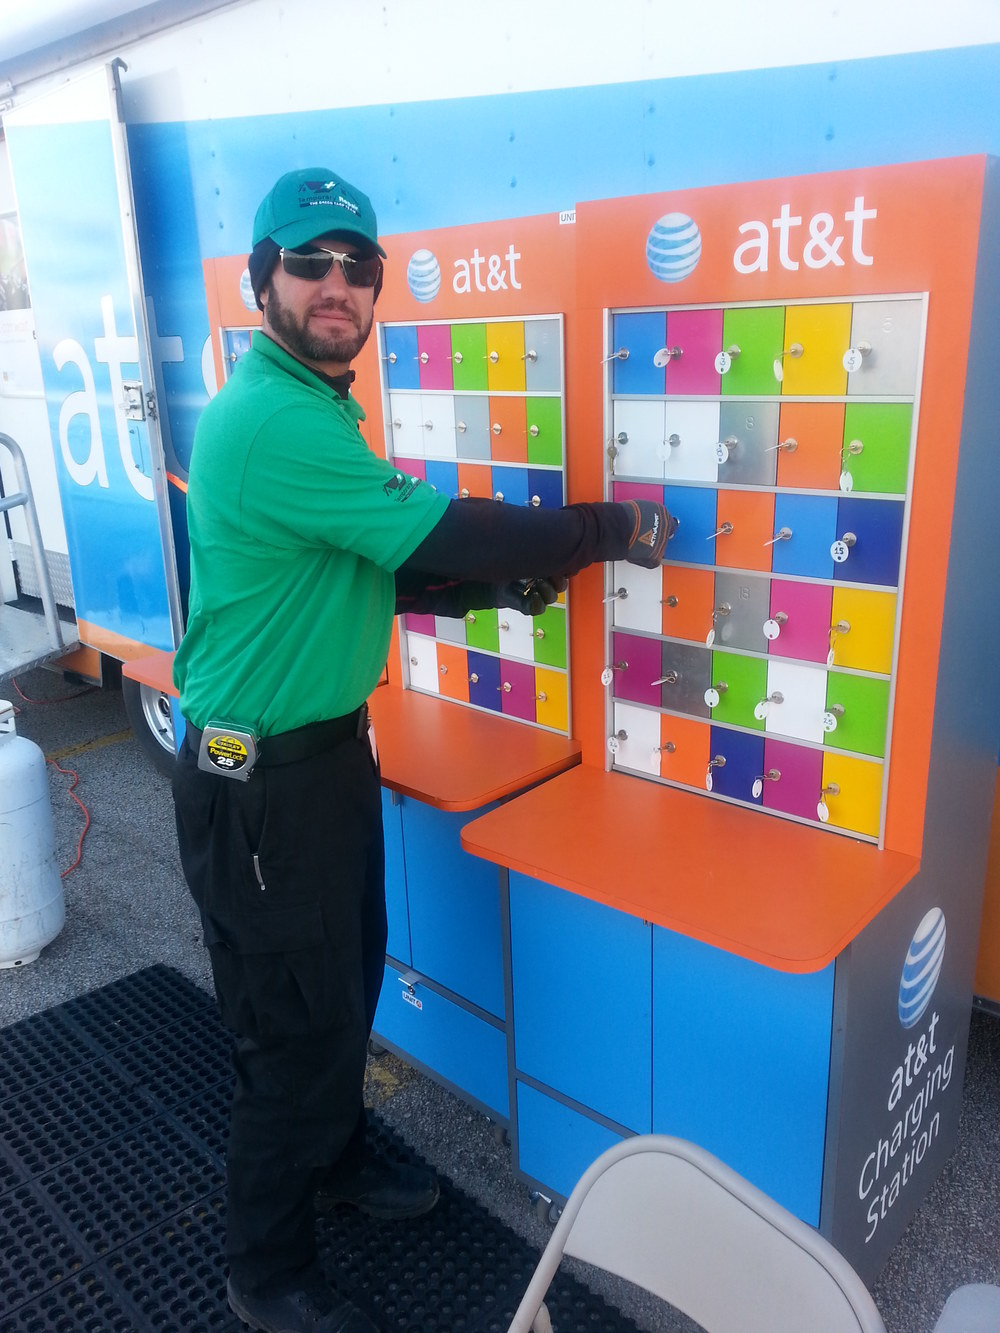 Temporary Repair crew member stops by AT&T charging station to get some power juice. What an amazing way to give back